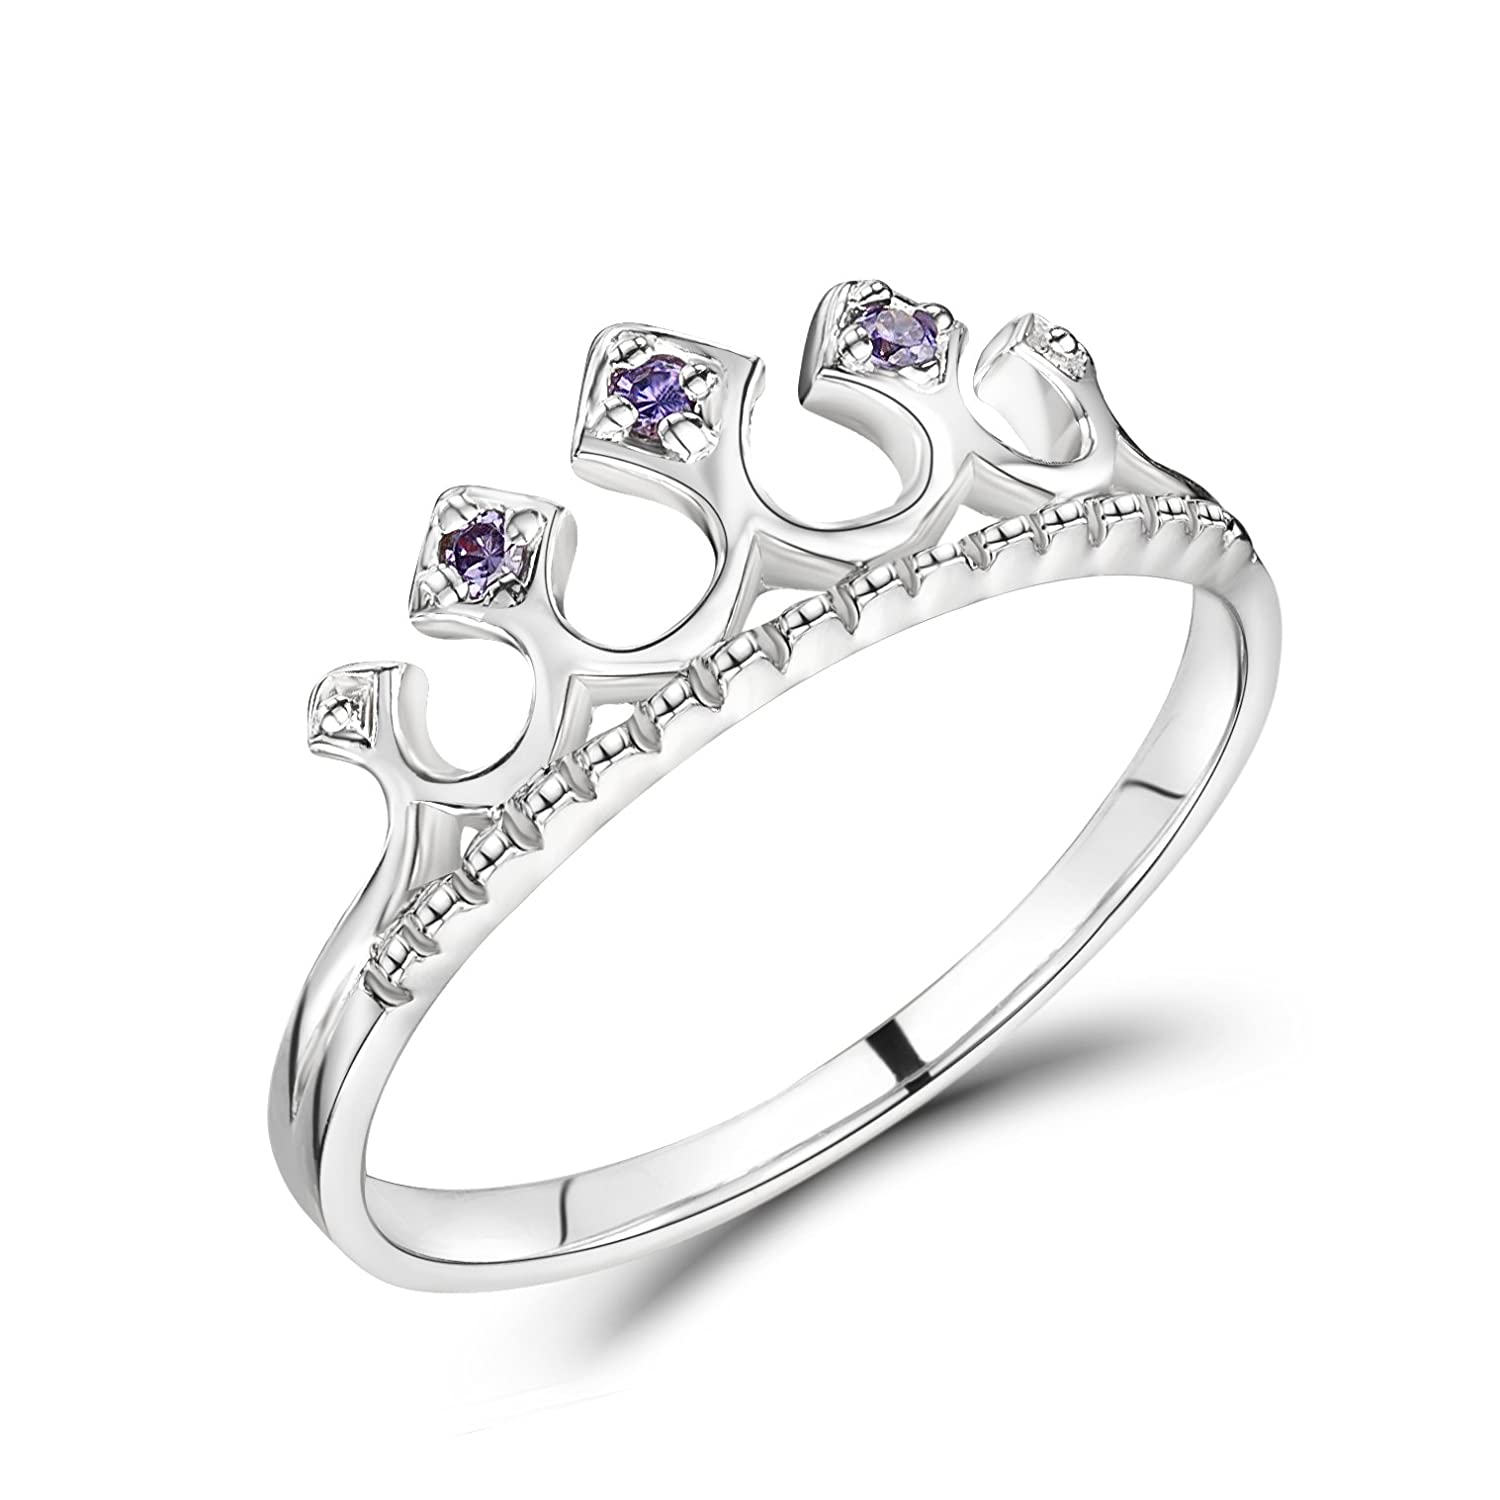 Jo for Girls-Couronne Princesse-Argent 925/1000–Taille 50